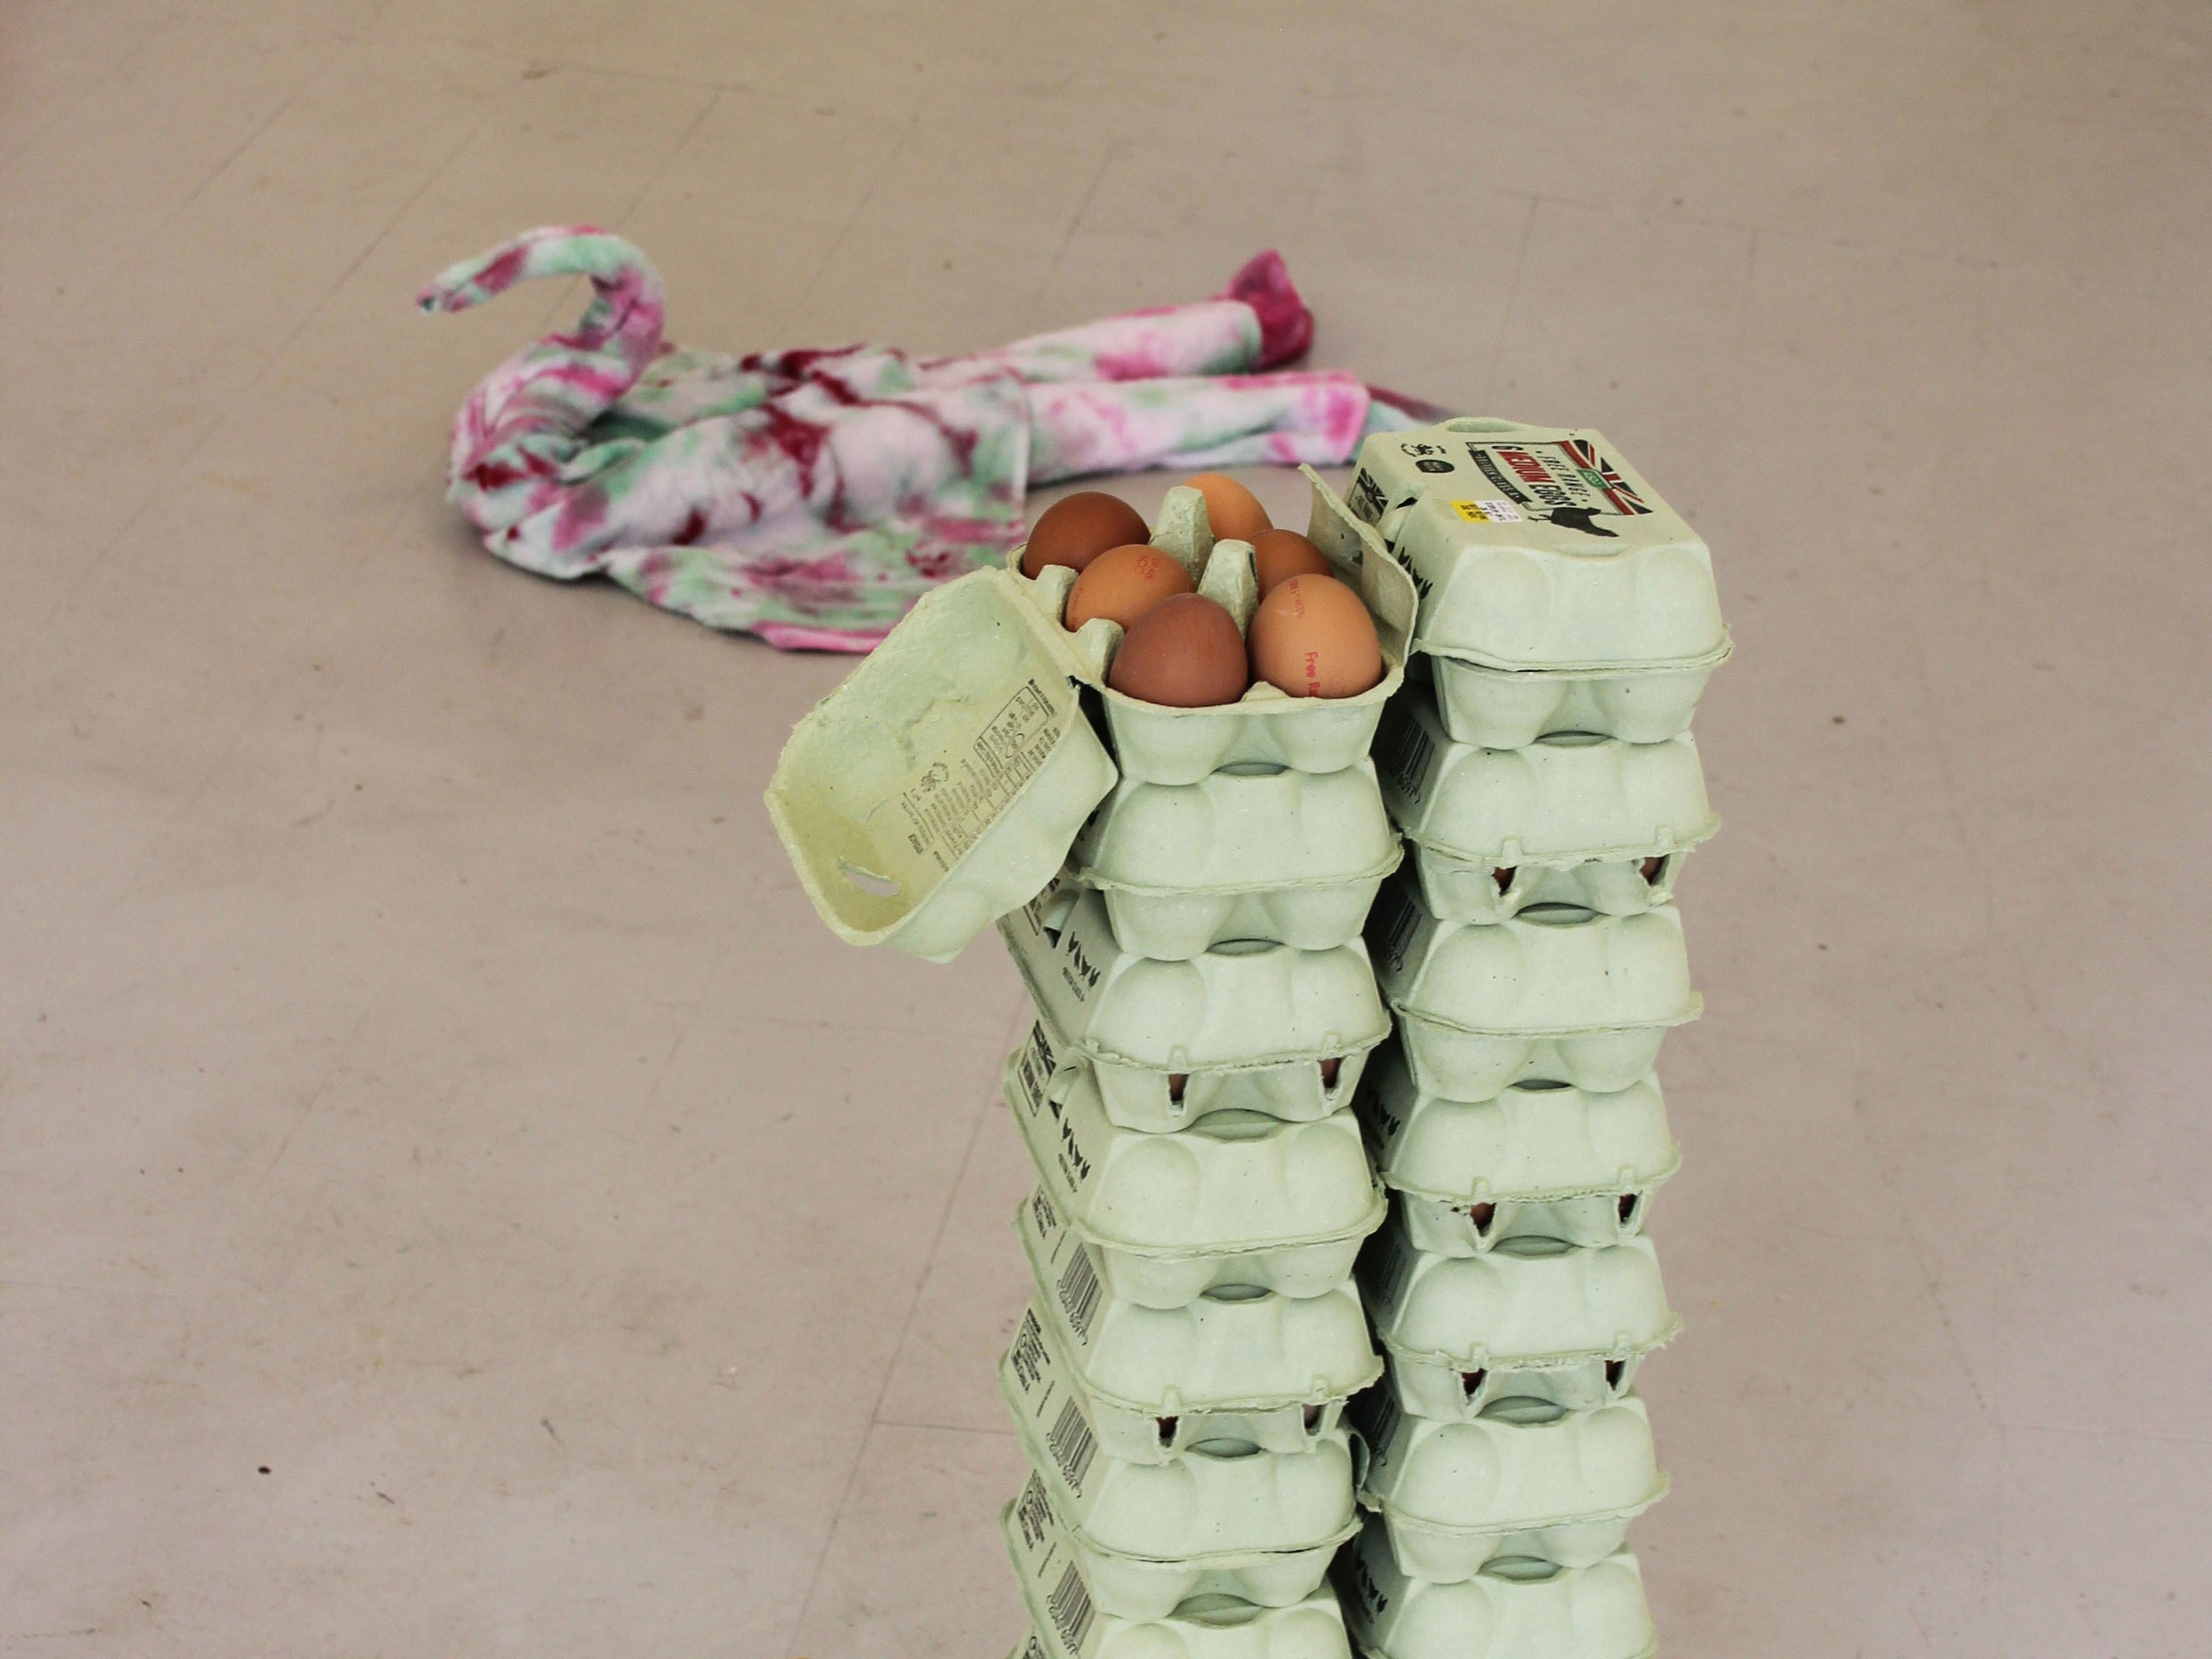 Photo of an egg carton and coloured textile installation featured in the You are the Good Morning exhibition at Honeymoon 226.